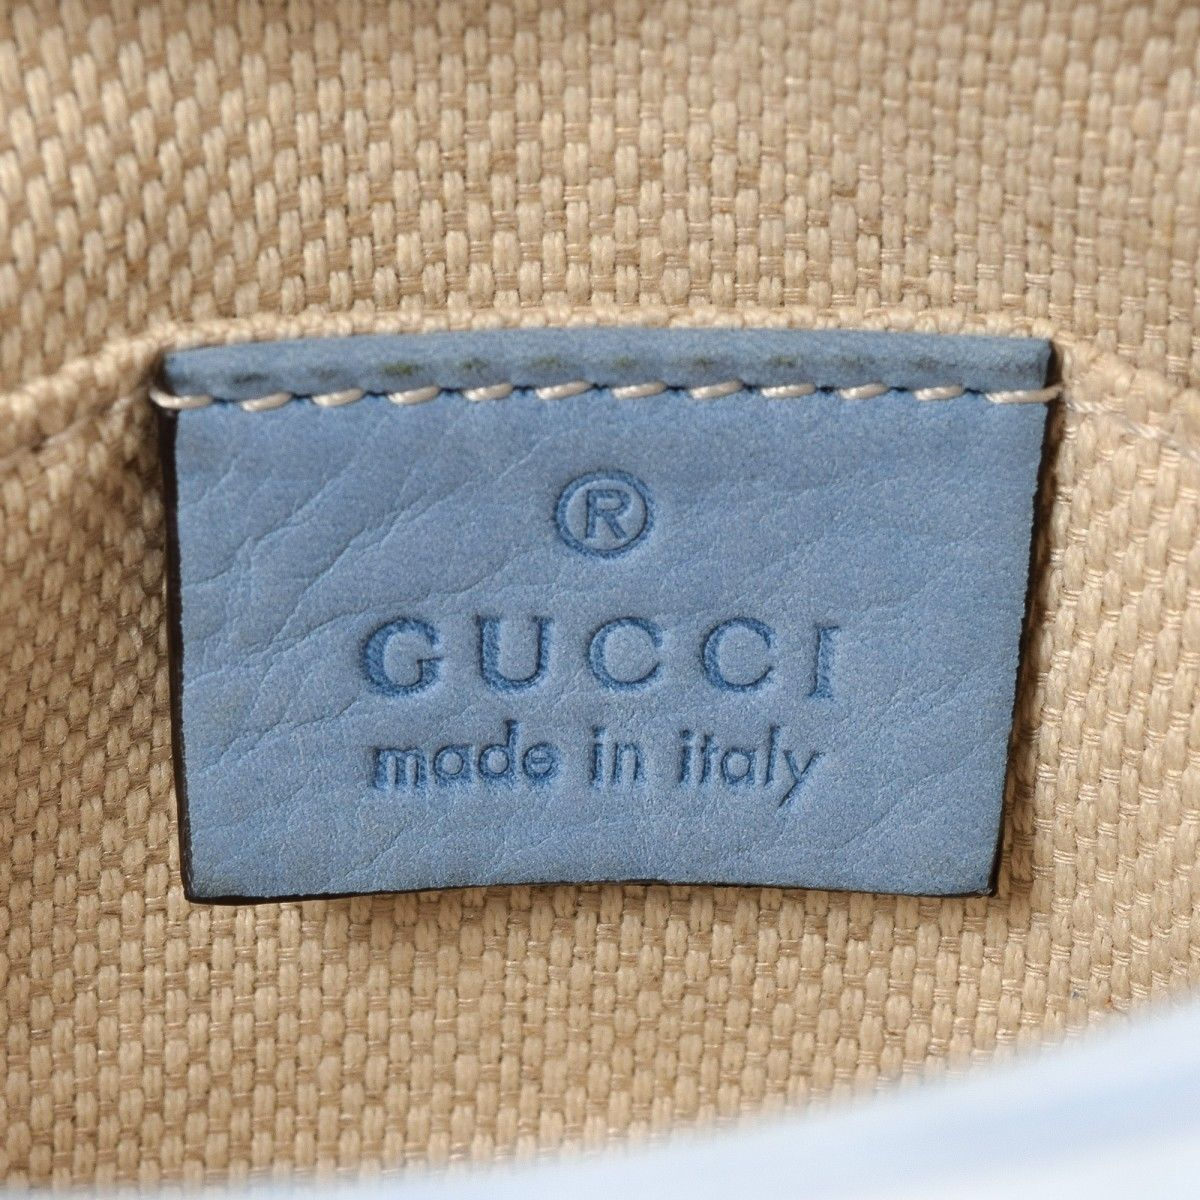 45bcd8bf202 Gucci Soho Disco Bag Nubuck - LXRandCo - Pre-Owned Luxury Vintage